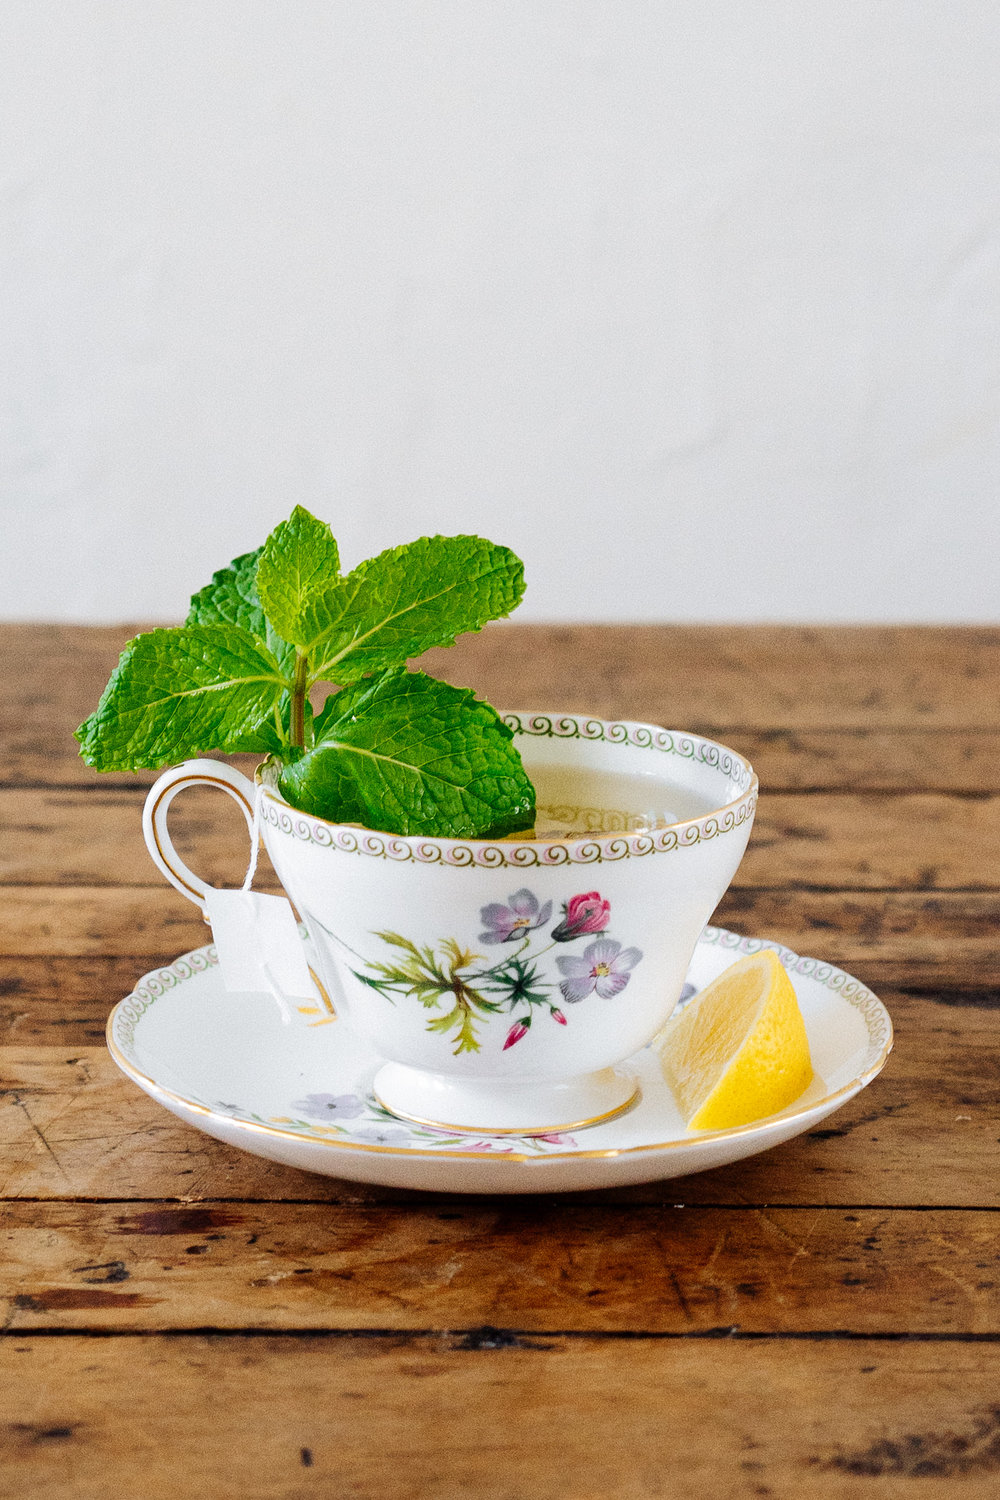 HOT TODDY   1 1/2 oz Chareau  1/4 oz Honey  1/4 oz Lemon Juice  1 Tea Bag (green tea or mint)  Add Chareau, honey, and lemon juice to cup of hot tea. Garnish with a lemon wedge and fresh mint.